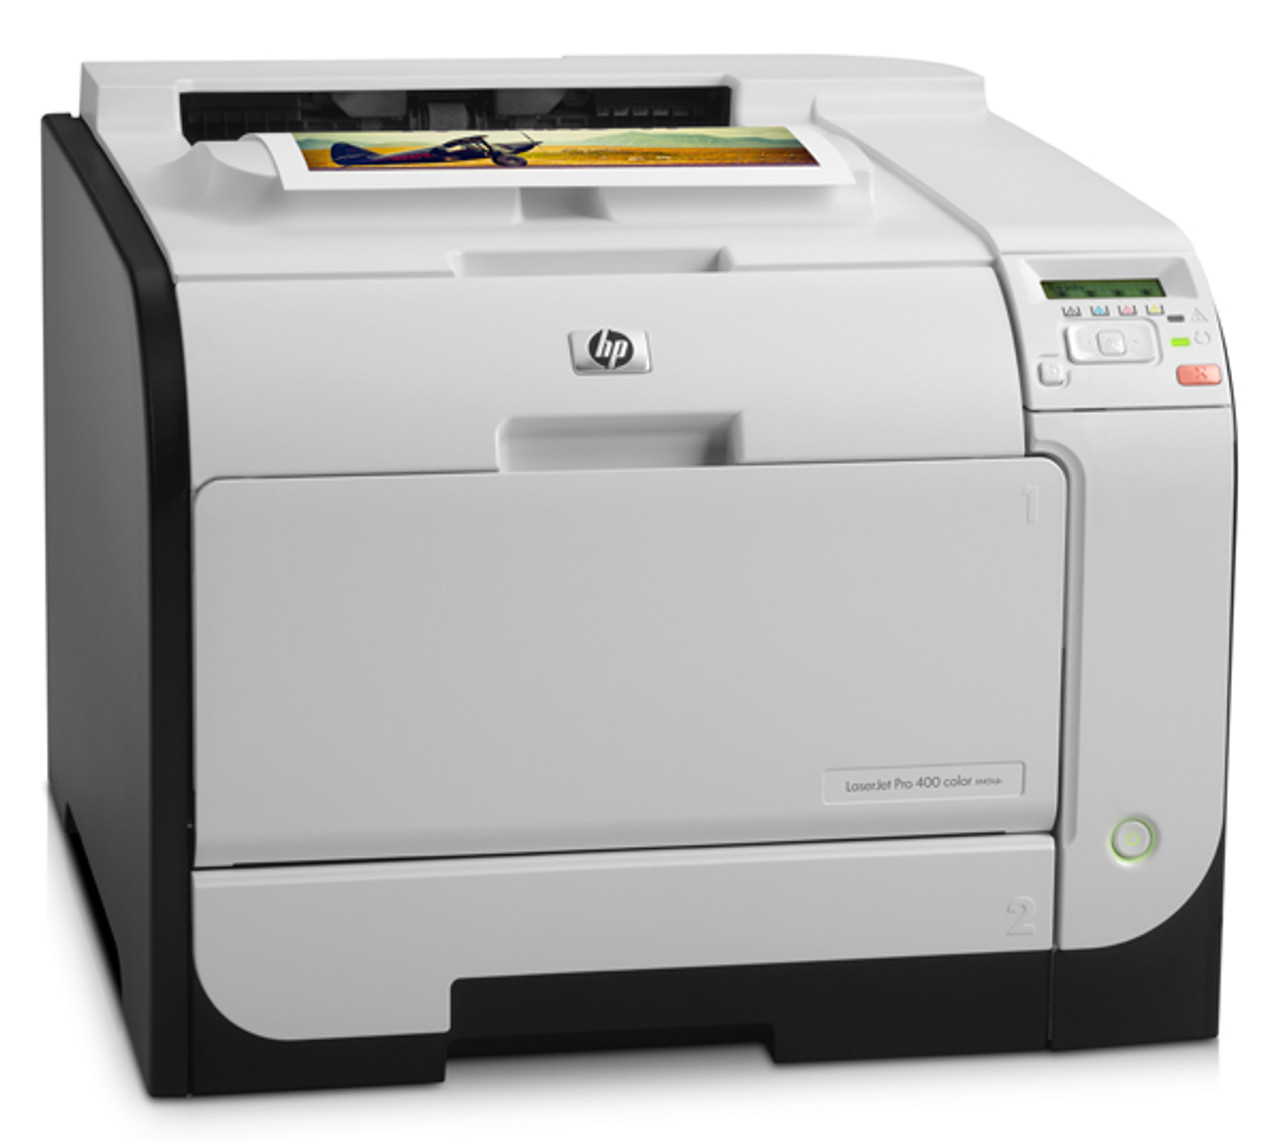 HP LaserJet Pro 400 Color Laser Printer M451nw - CE956A - HP Laser Printer for sale